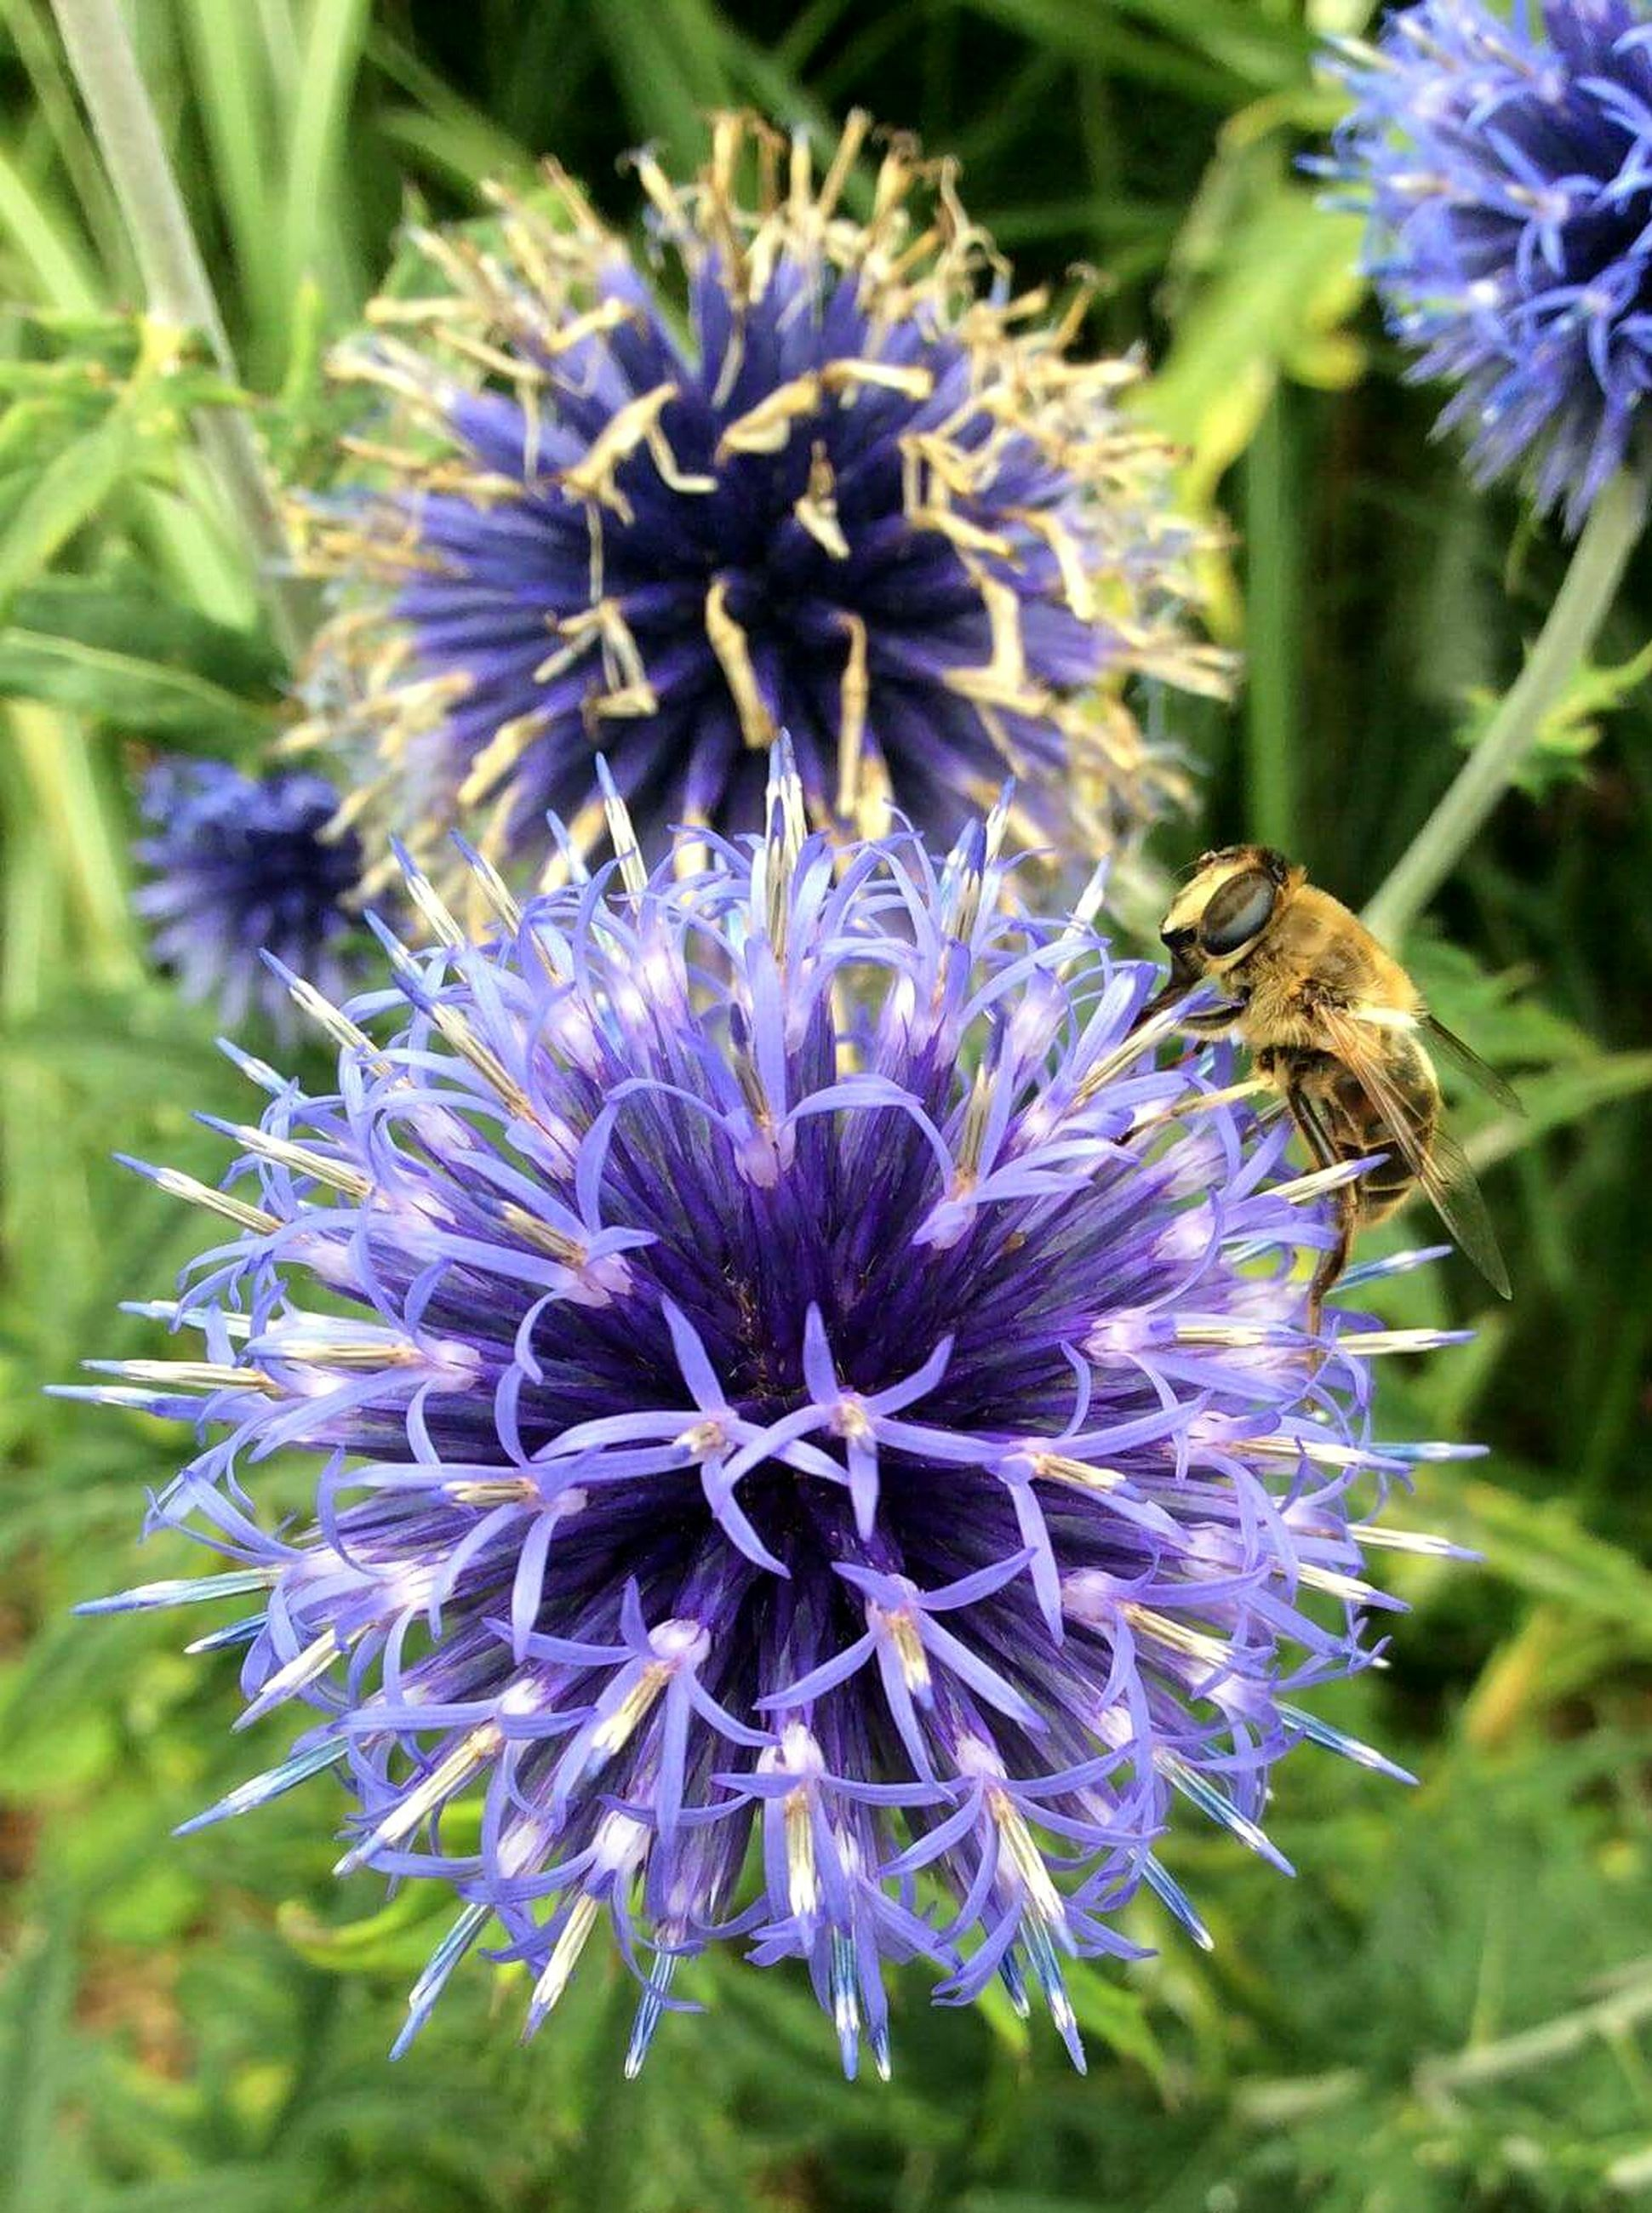 flower, purple, fragility, nature, beauty in nature, animal themes, growth, plant, insect, animals in the wild, freshness, one animal, blooming, petal, flower head, outdoors, pollination, no people, day, close-up, bee, thistle